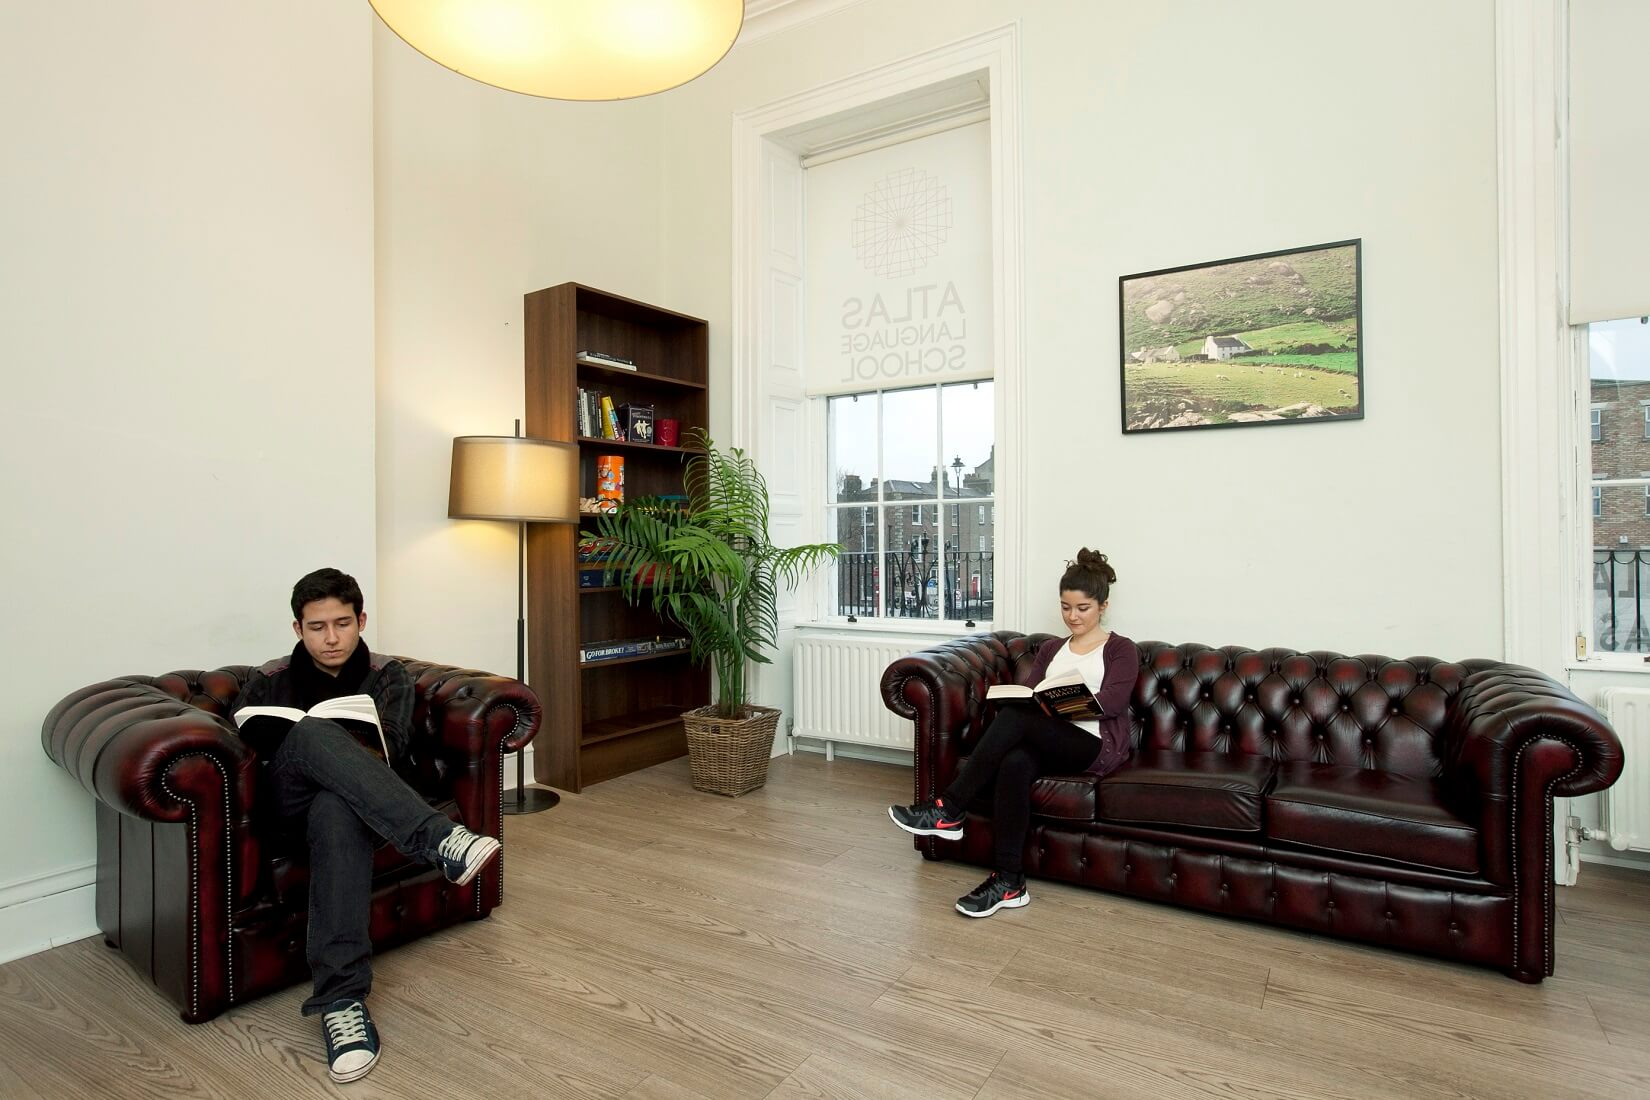 study-room-two-people